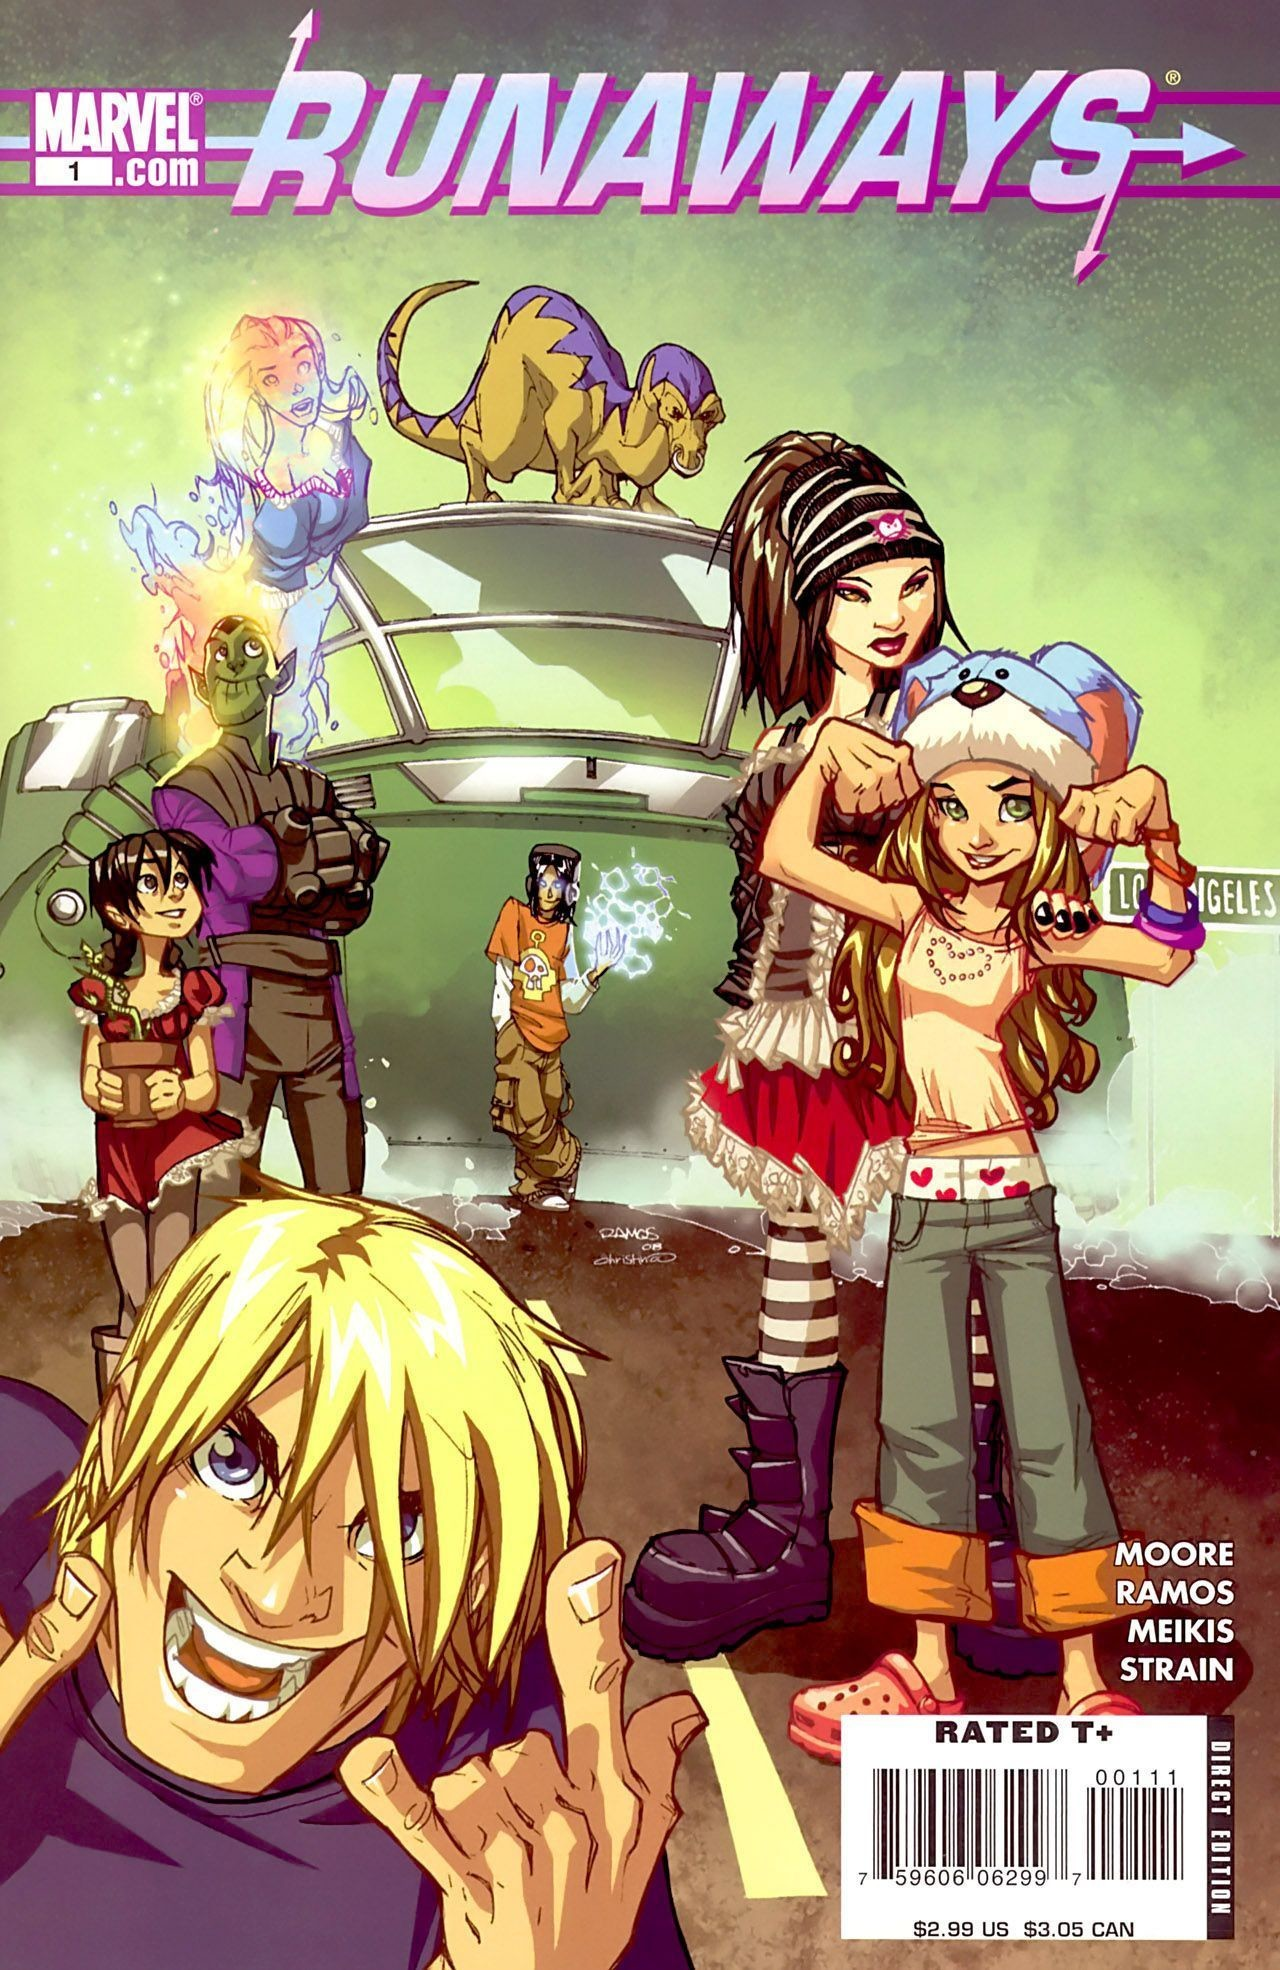 1280x1970 The Runaways (comics) images Volume 3 Covers HD wallpaper and background  photos